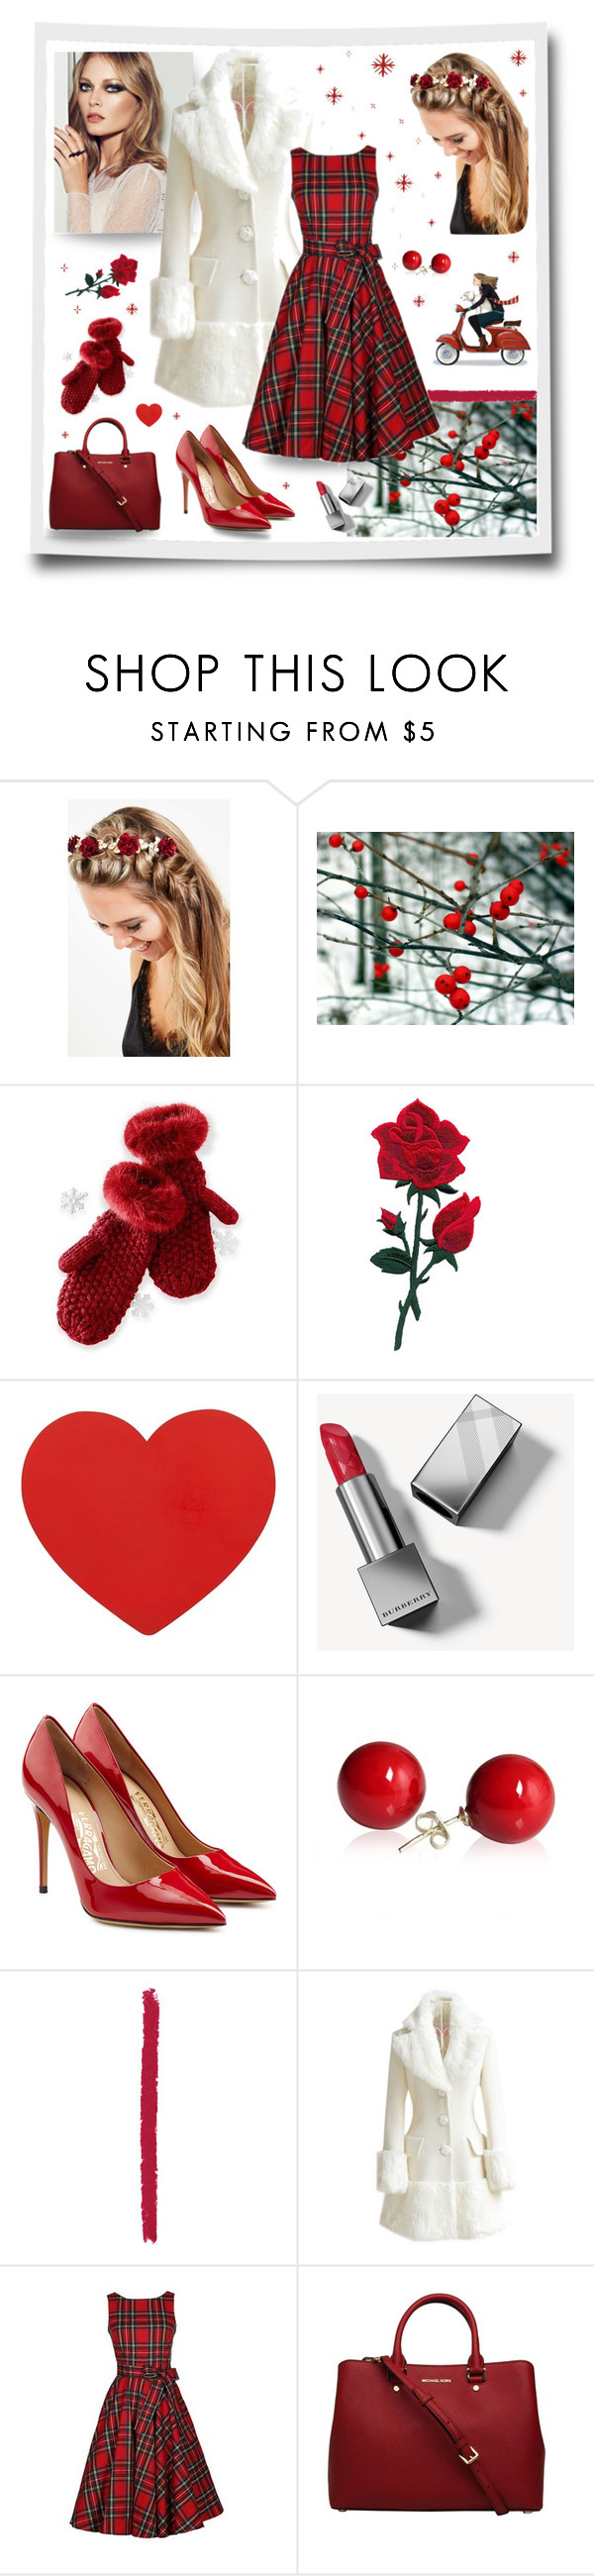 """""""Winter red"""" by magnolialily-prints ❤ liked on Polyvore featuring Johnny Loves Rosie, Mark & Graham, Burberry, Salvatore Ferragamo, Louis Vuitton and WithChic"""